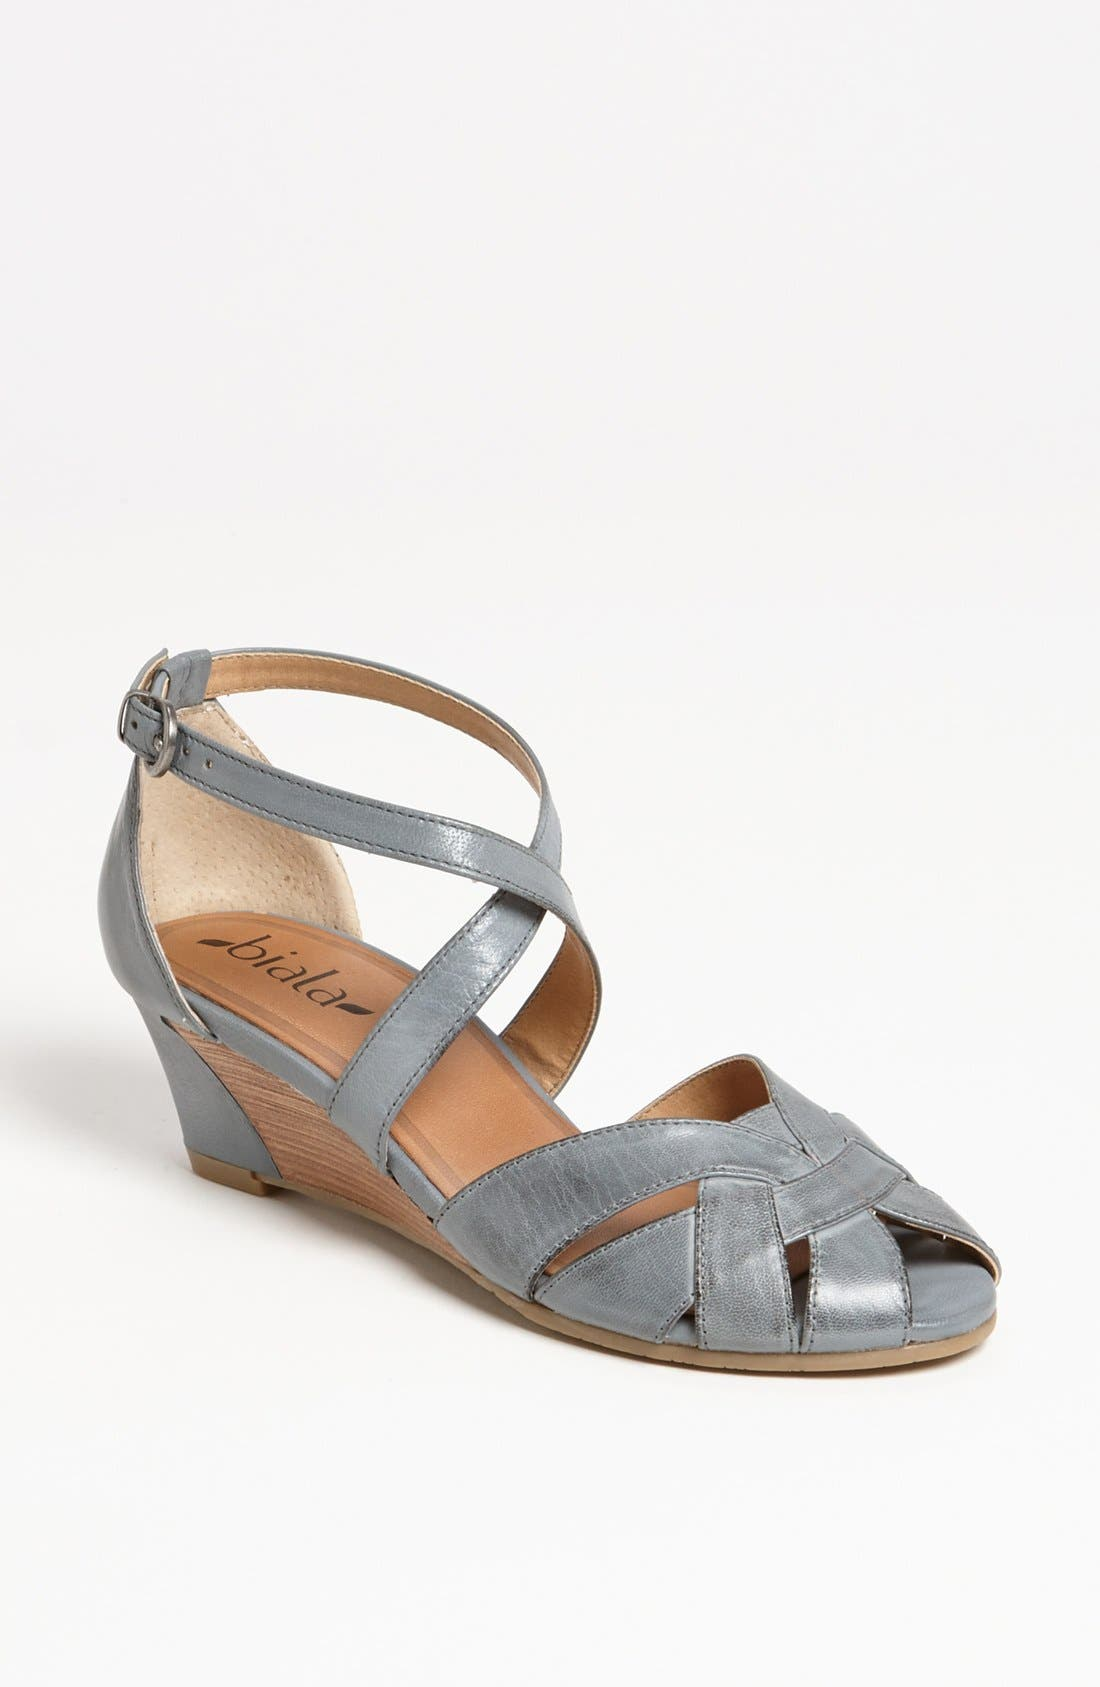 Alternate Image 1 Selected - Biala 'Julie' Wedge Sandal